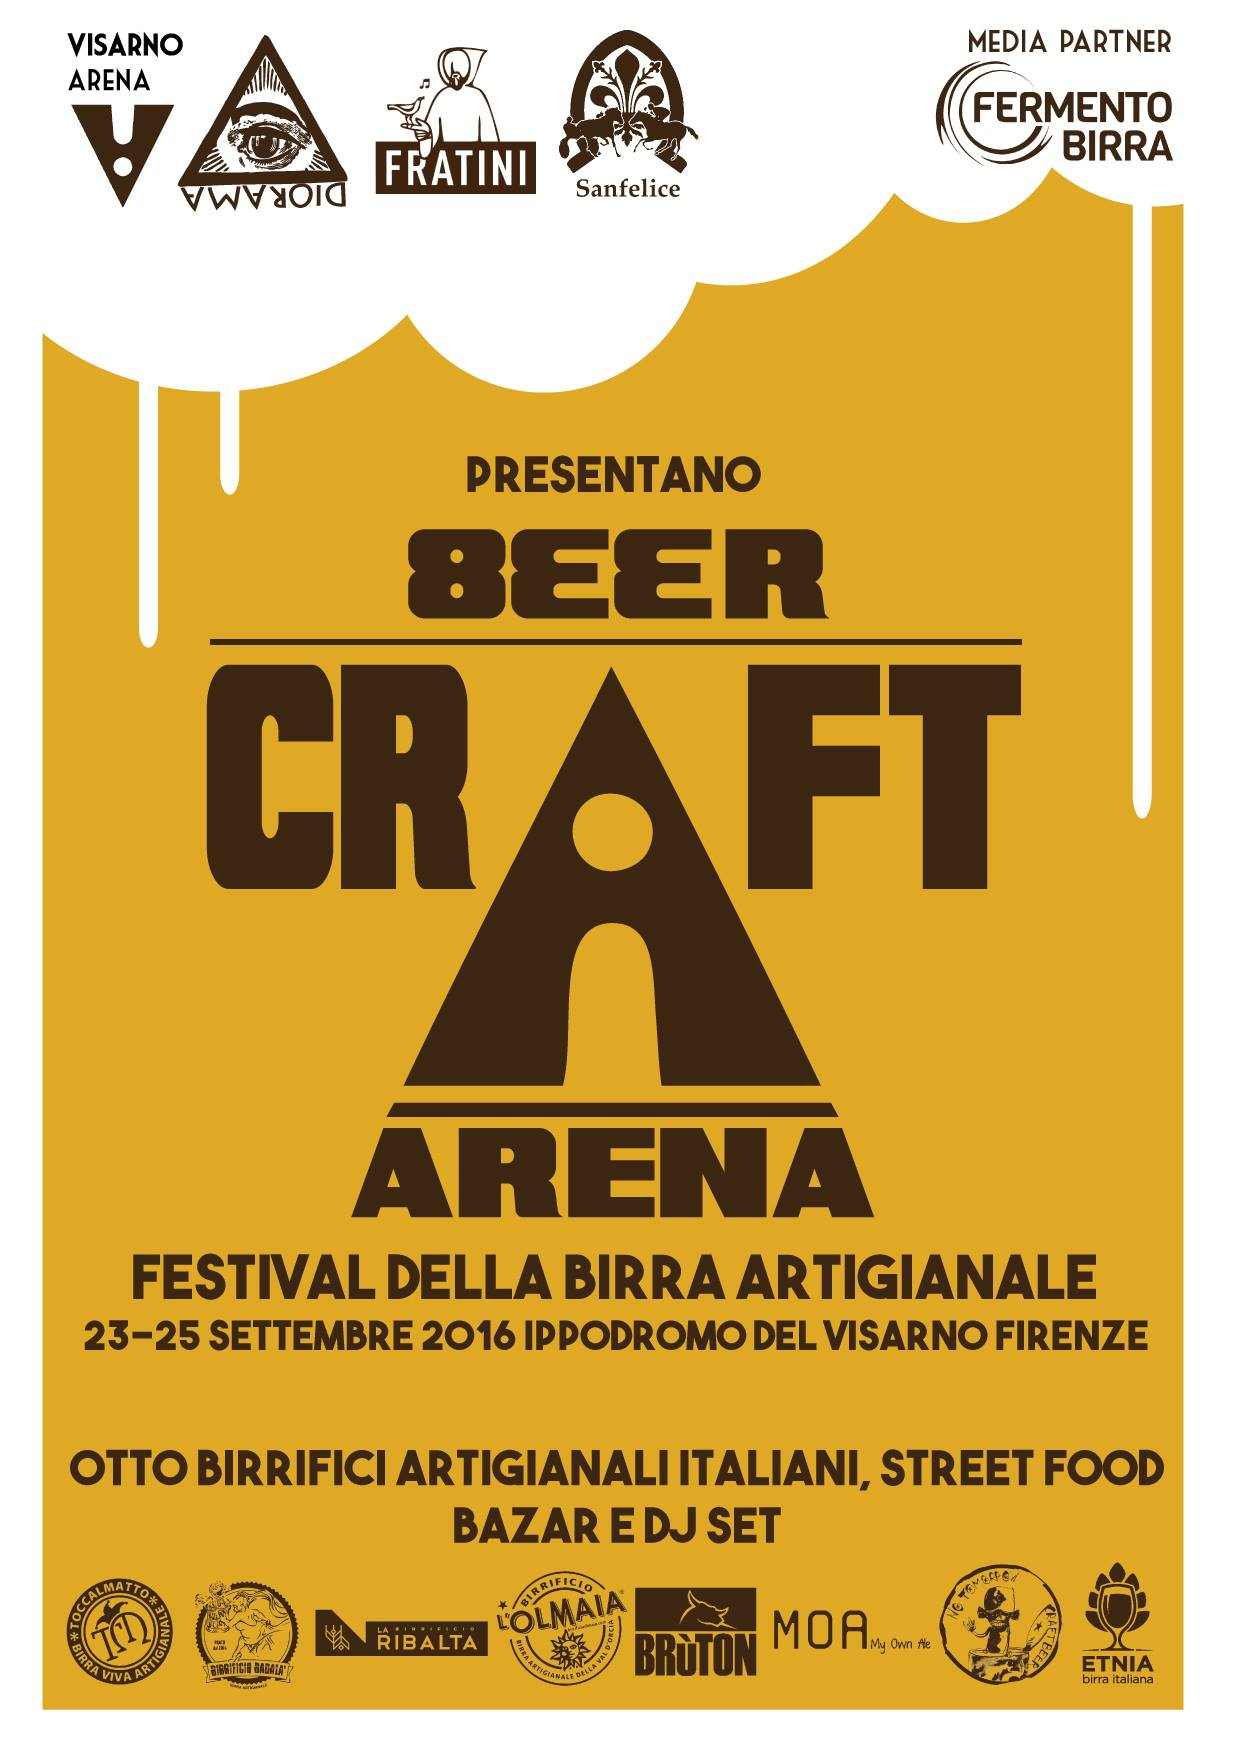 beer craft arena 2016